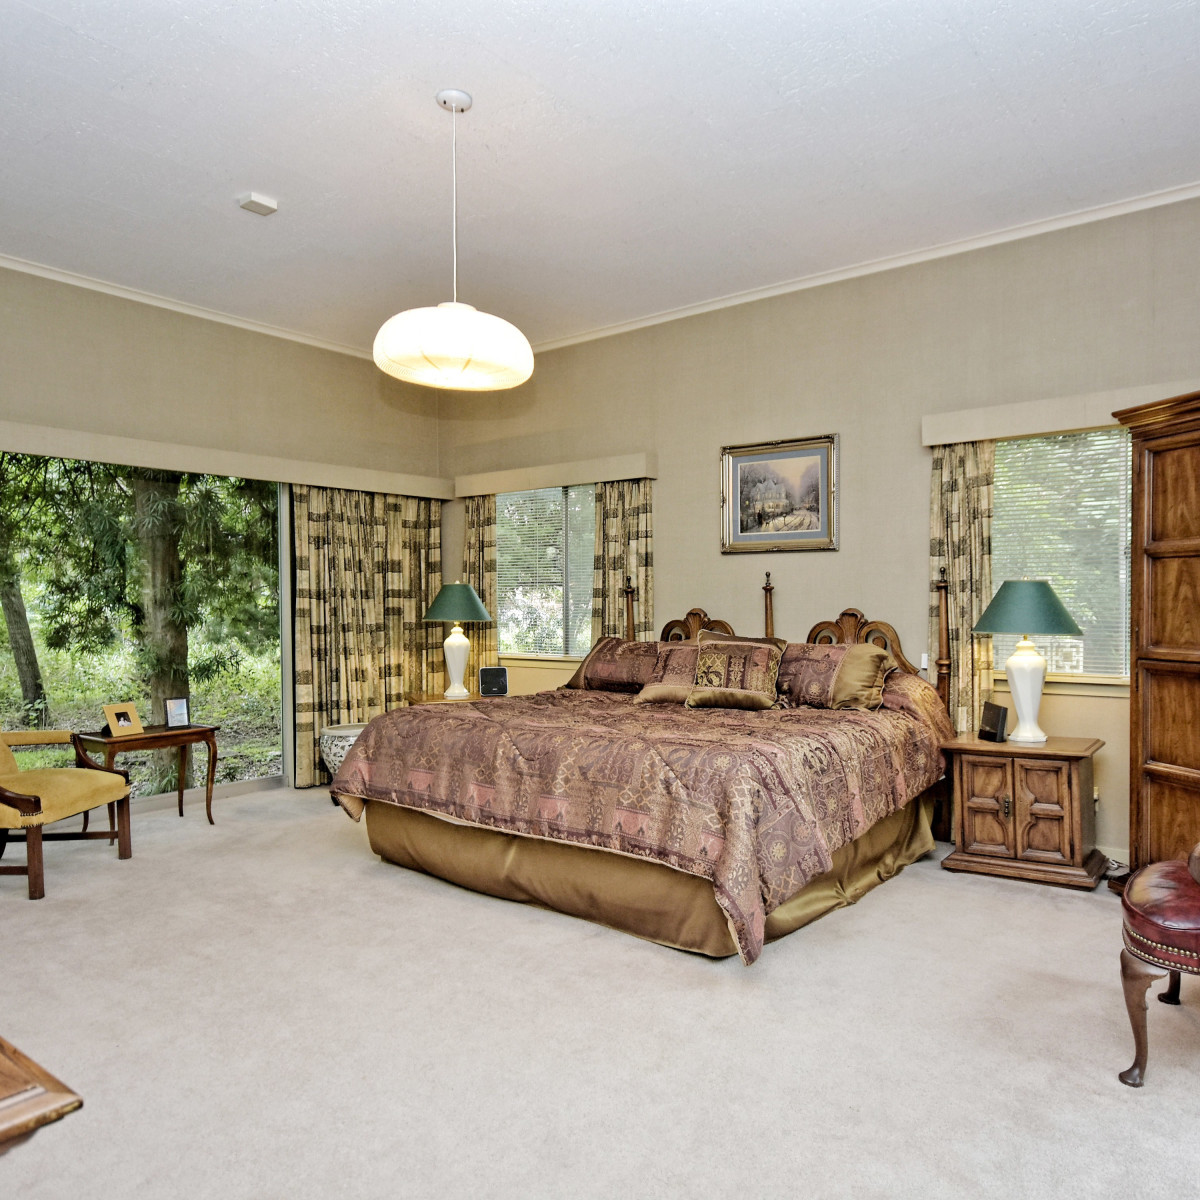 581 Coll New Braunfels house for sale bedroom